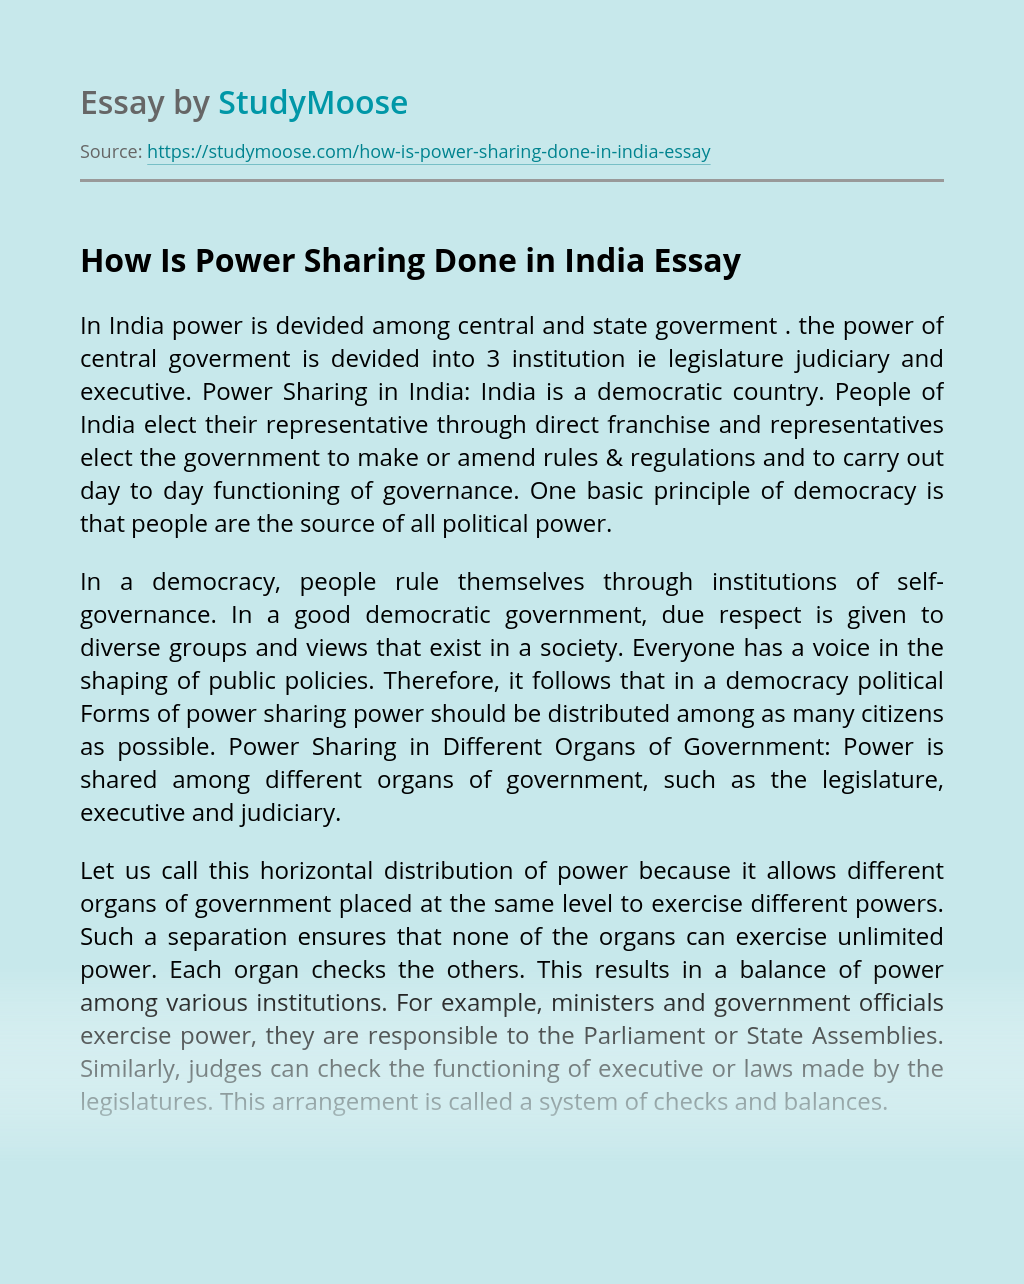 How Is Power Sharing Done in India